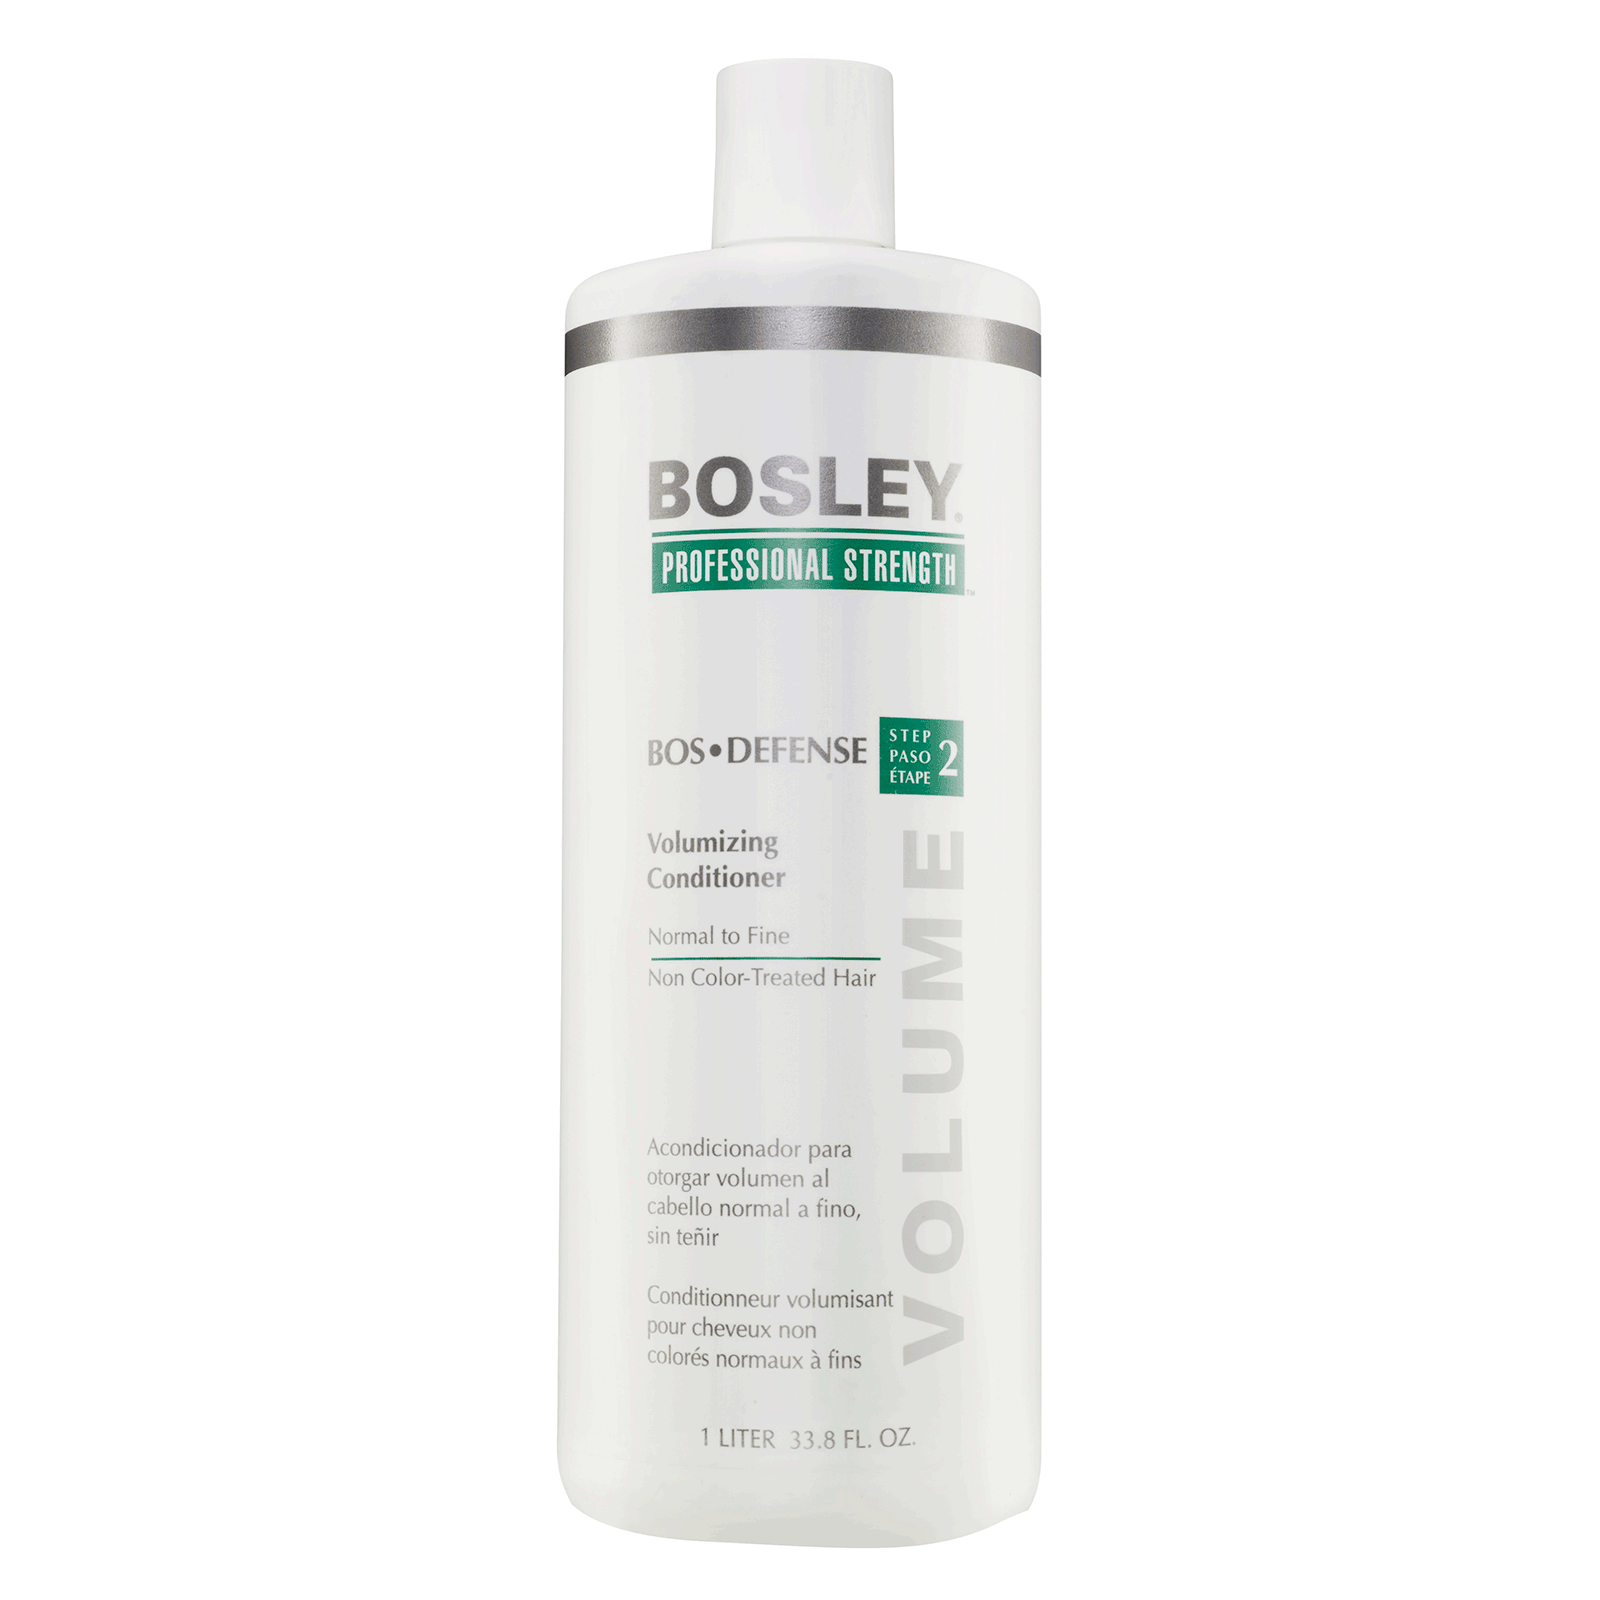 BosDefense Volumizing Conditioner for Non Color-Treated Hair